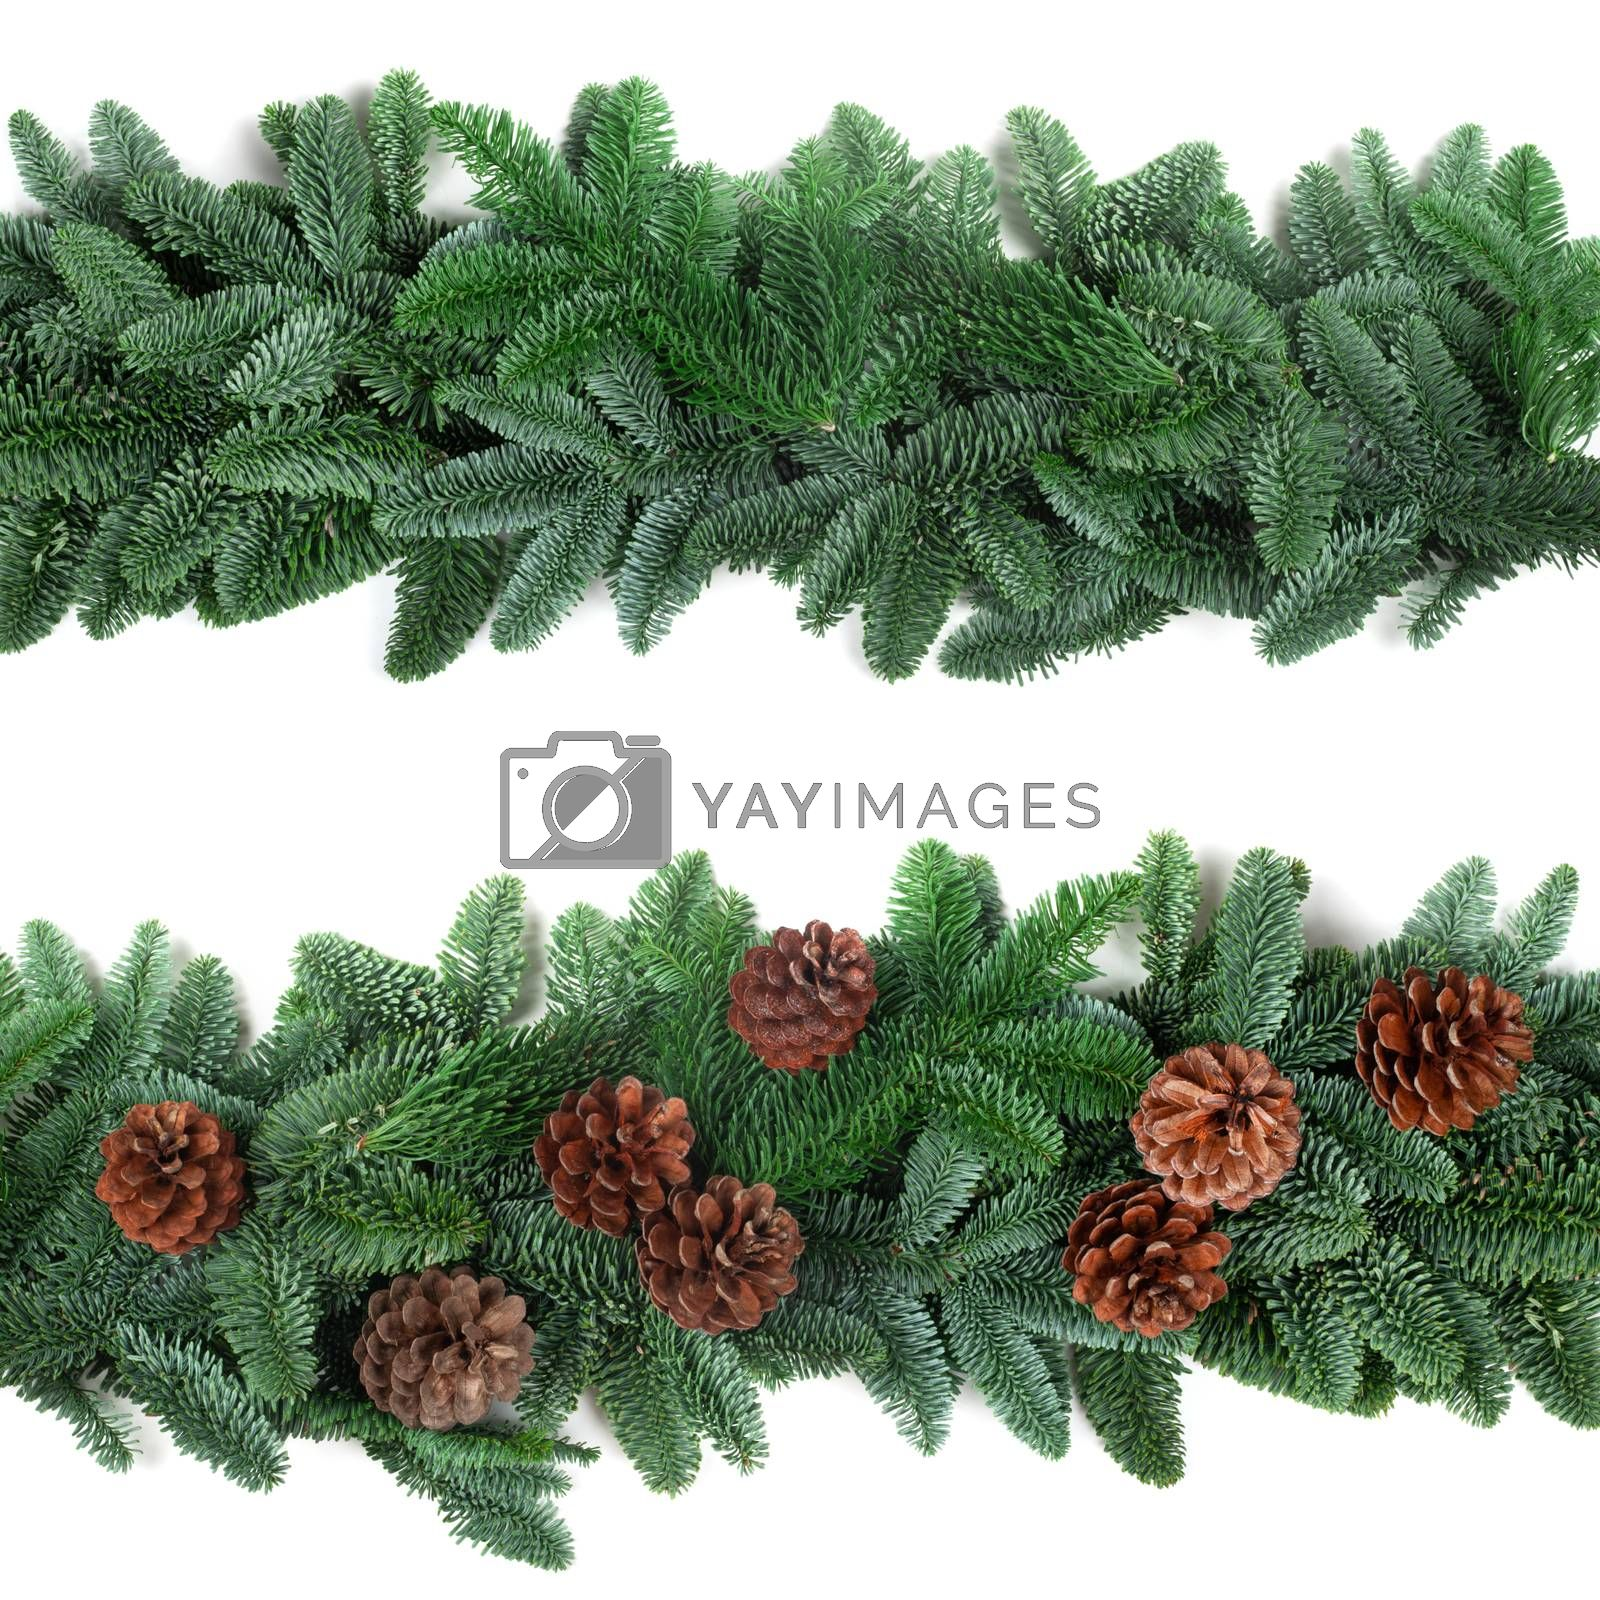 Christmas Border frame of natural noble fir tree branches and cones isolated on white background